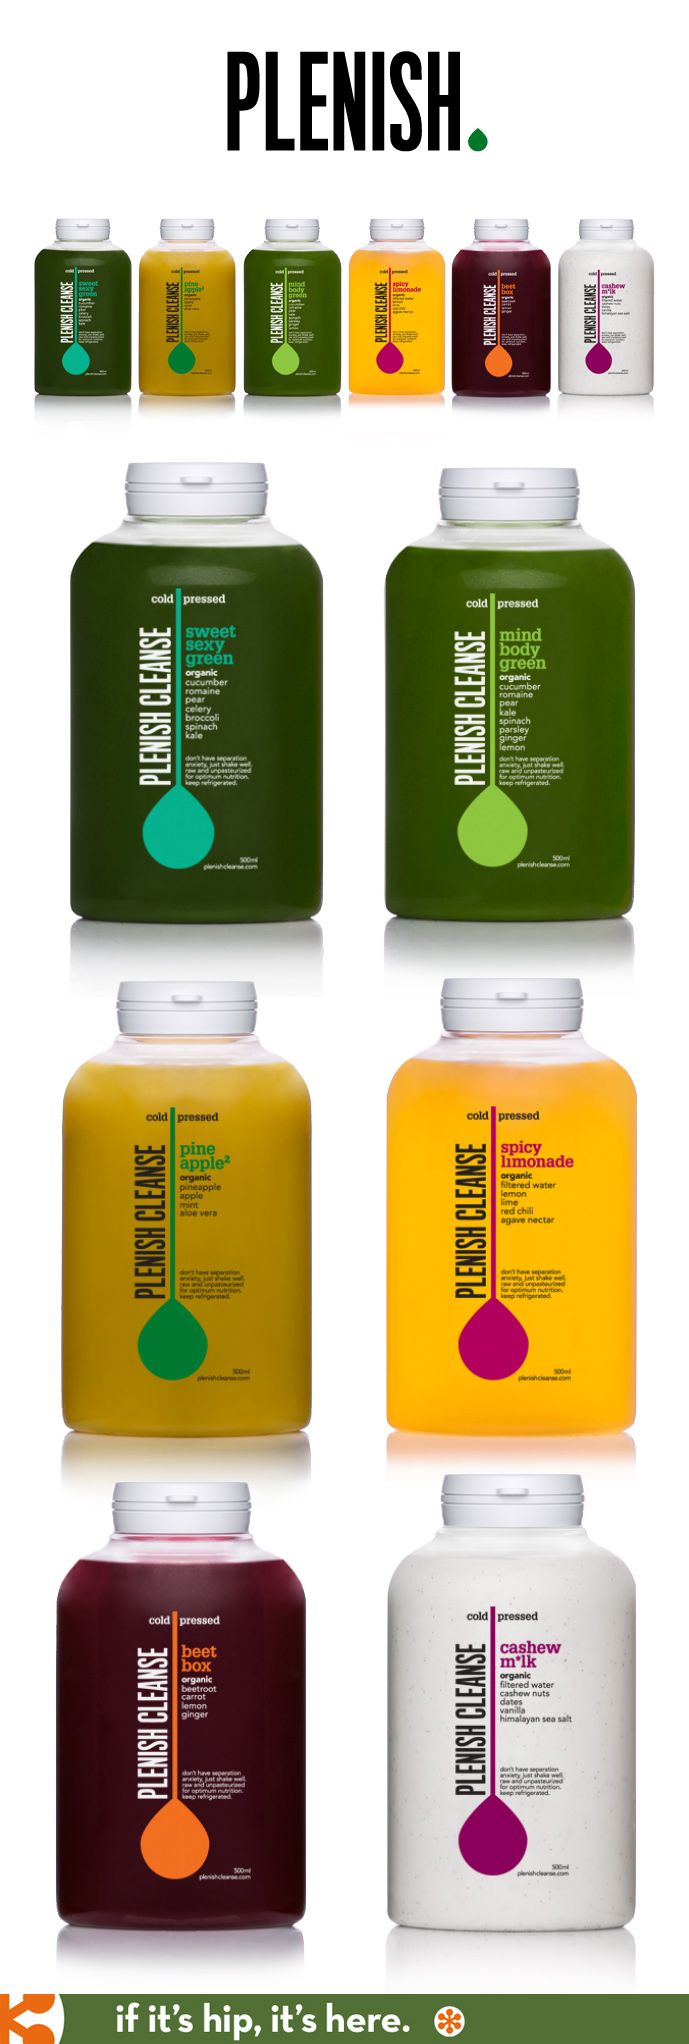 62 best cold pressed juice images on pinterest cold pressed plenish cleanse bottle designs malvernweather Gallery